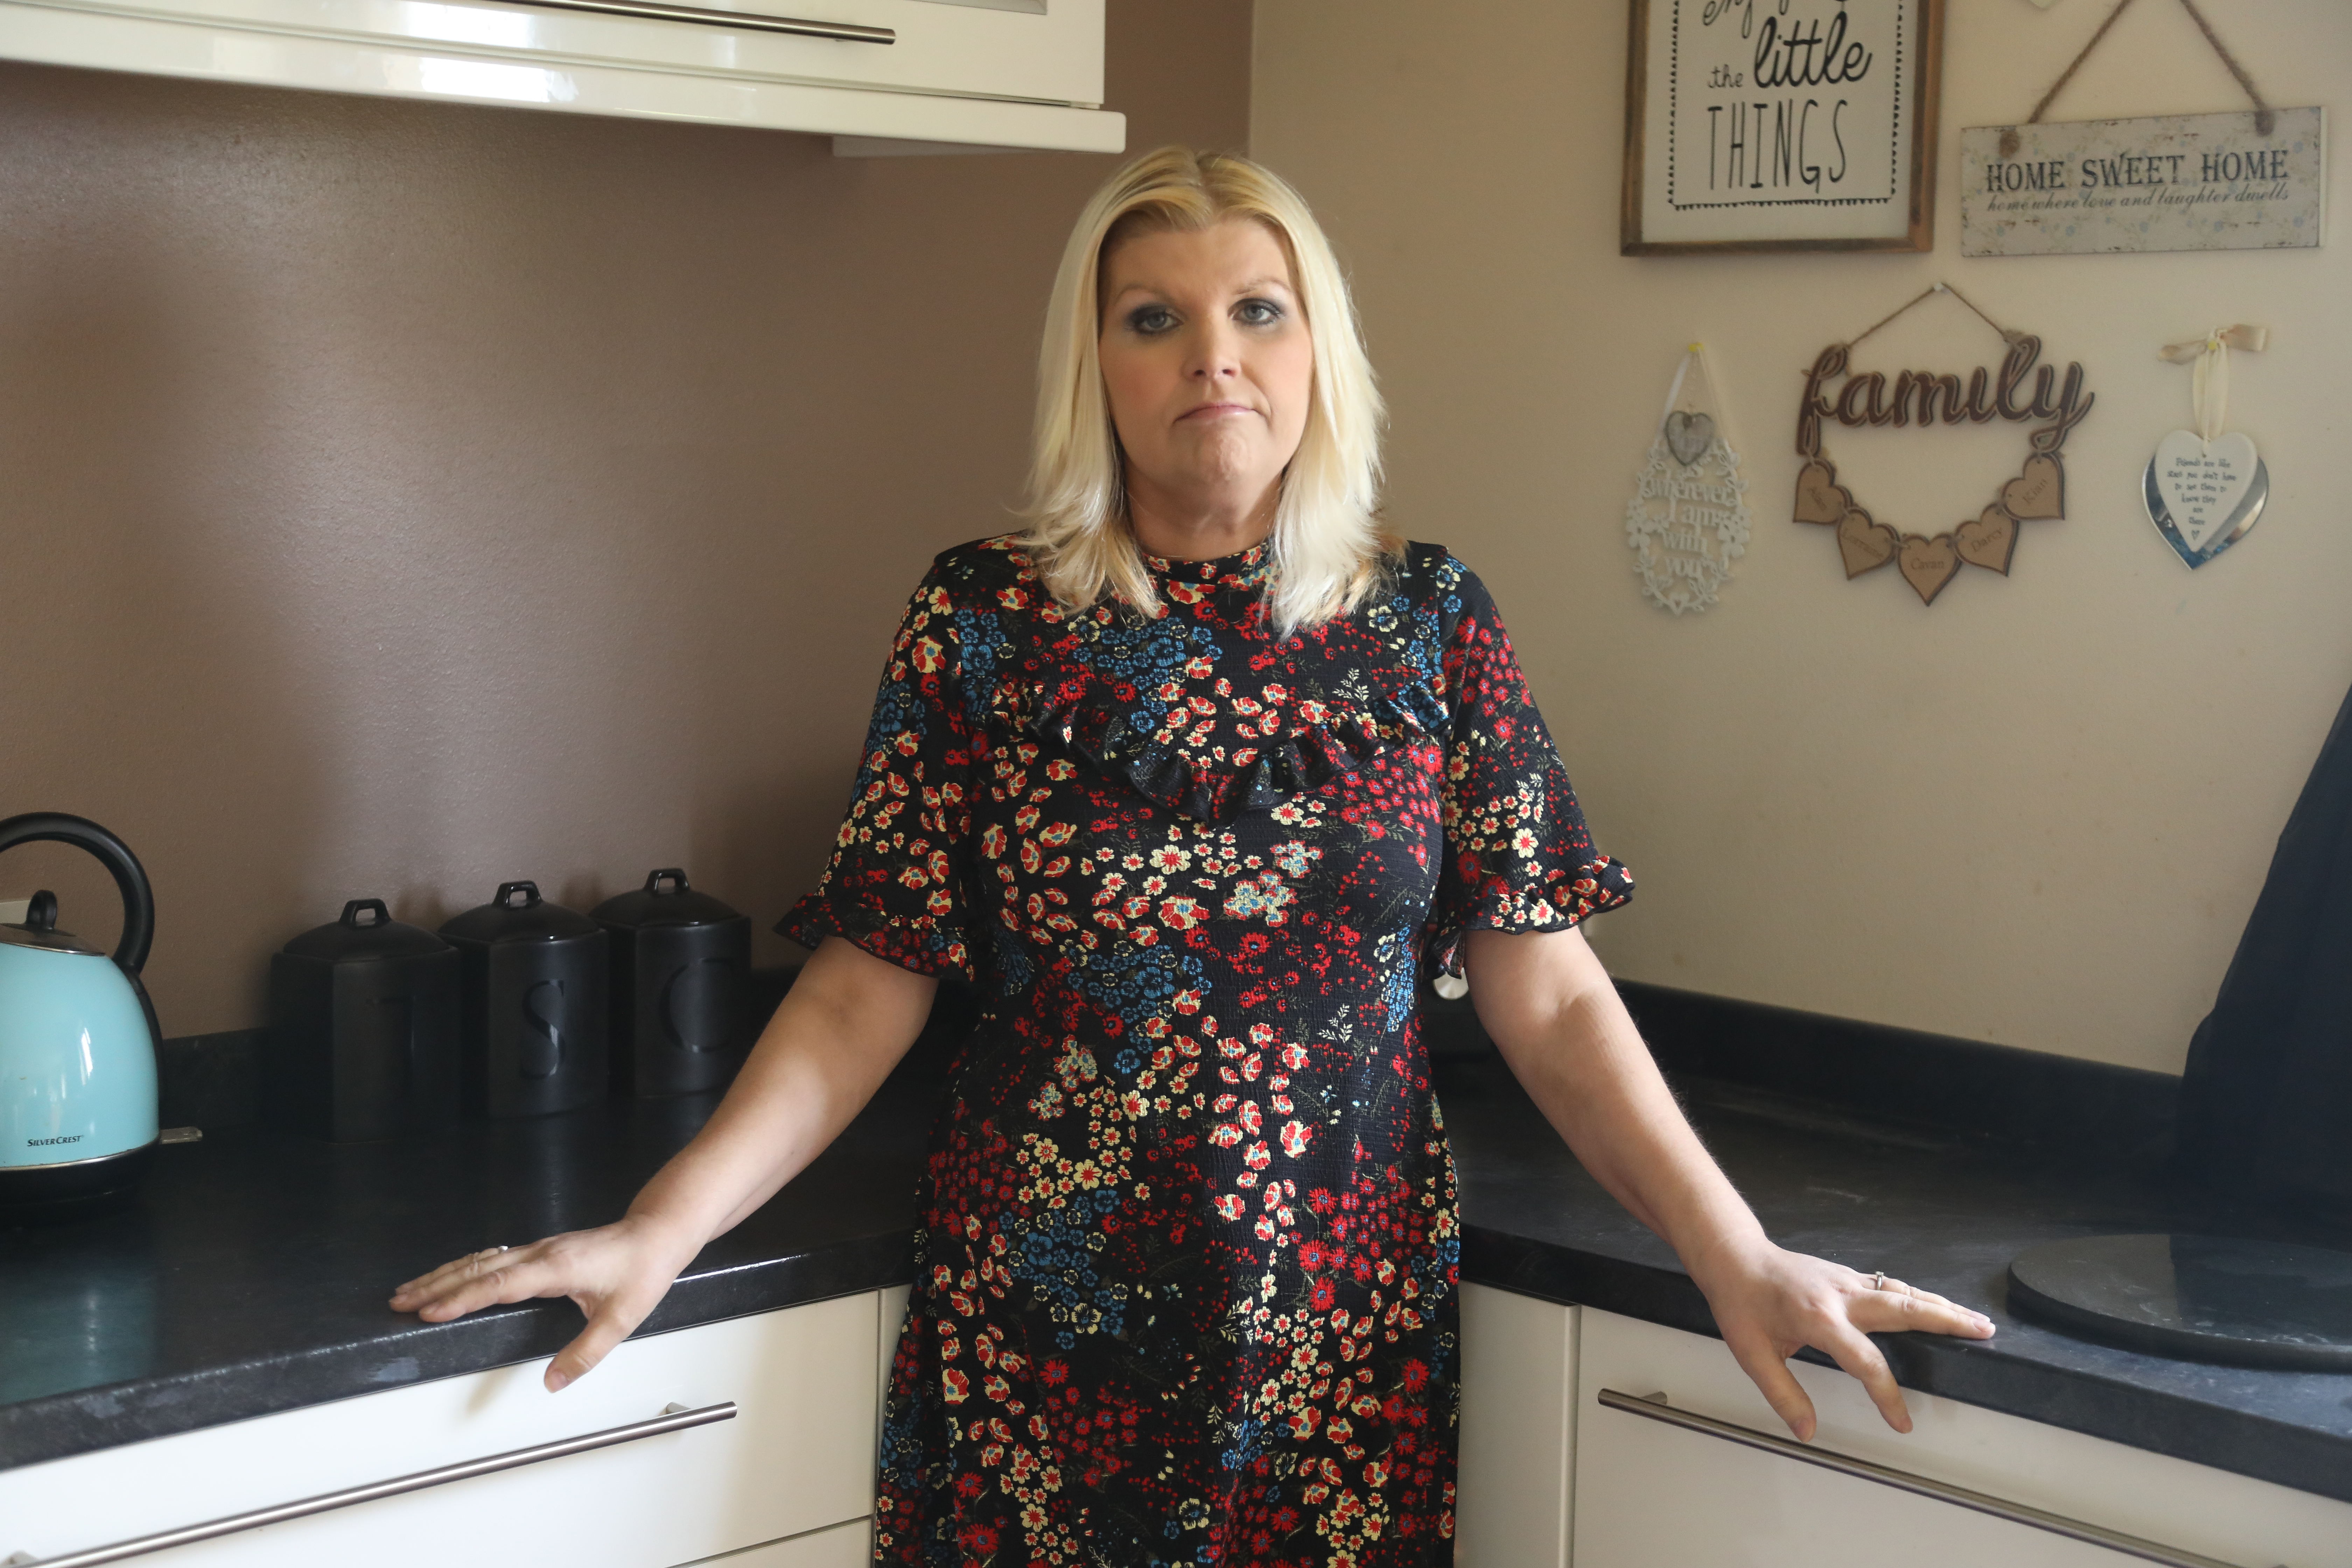 Lorraine Shearer at home in Orkney last week. She first noticed problems in her mouth in January last year, but despite check-ups from different specialists, no action was taken until a biopsy in September showed she had cancer